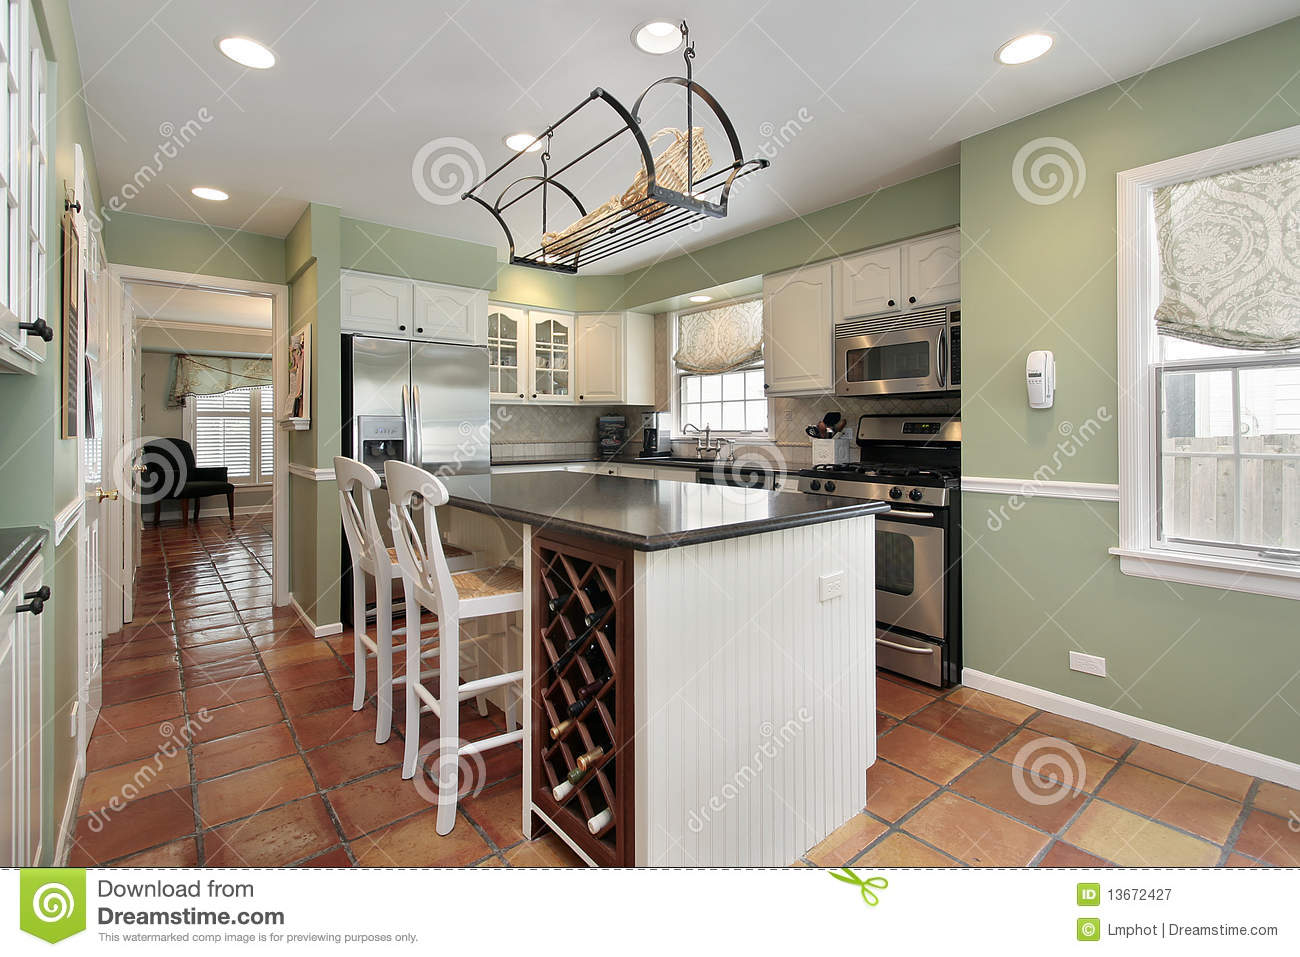 Terra Cotta Tile In Kitchen Kitchen With Terra Cotta Floor Tile Royalty Free Stock Photography